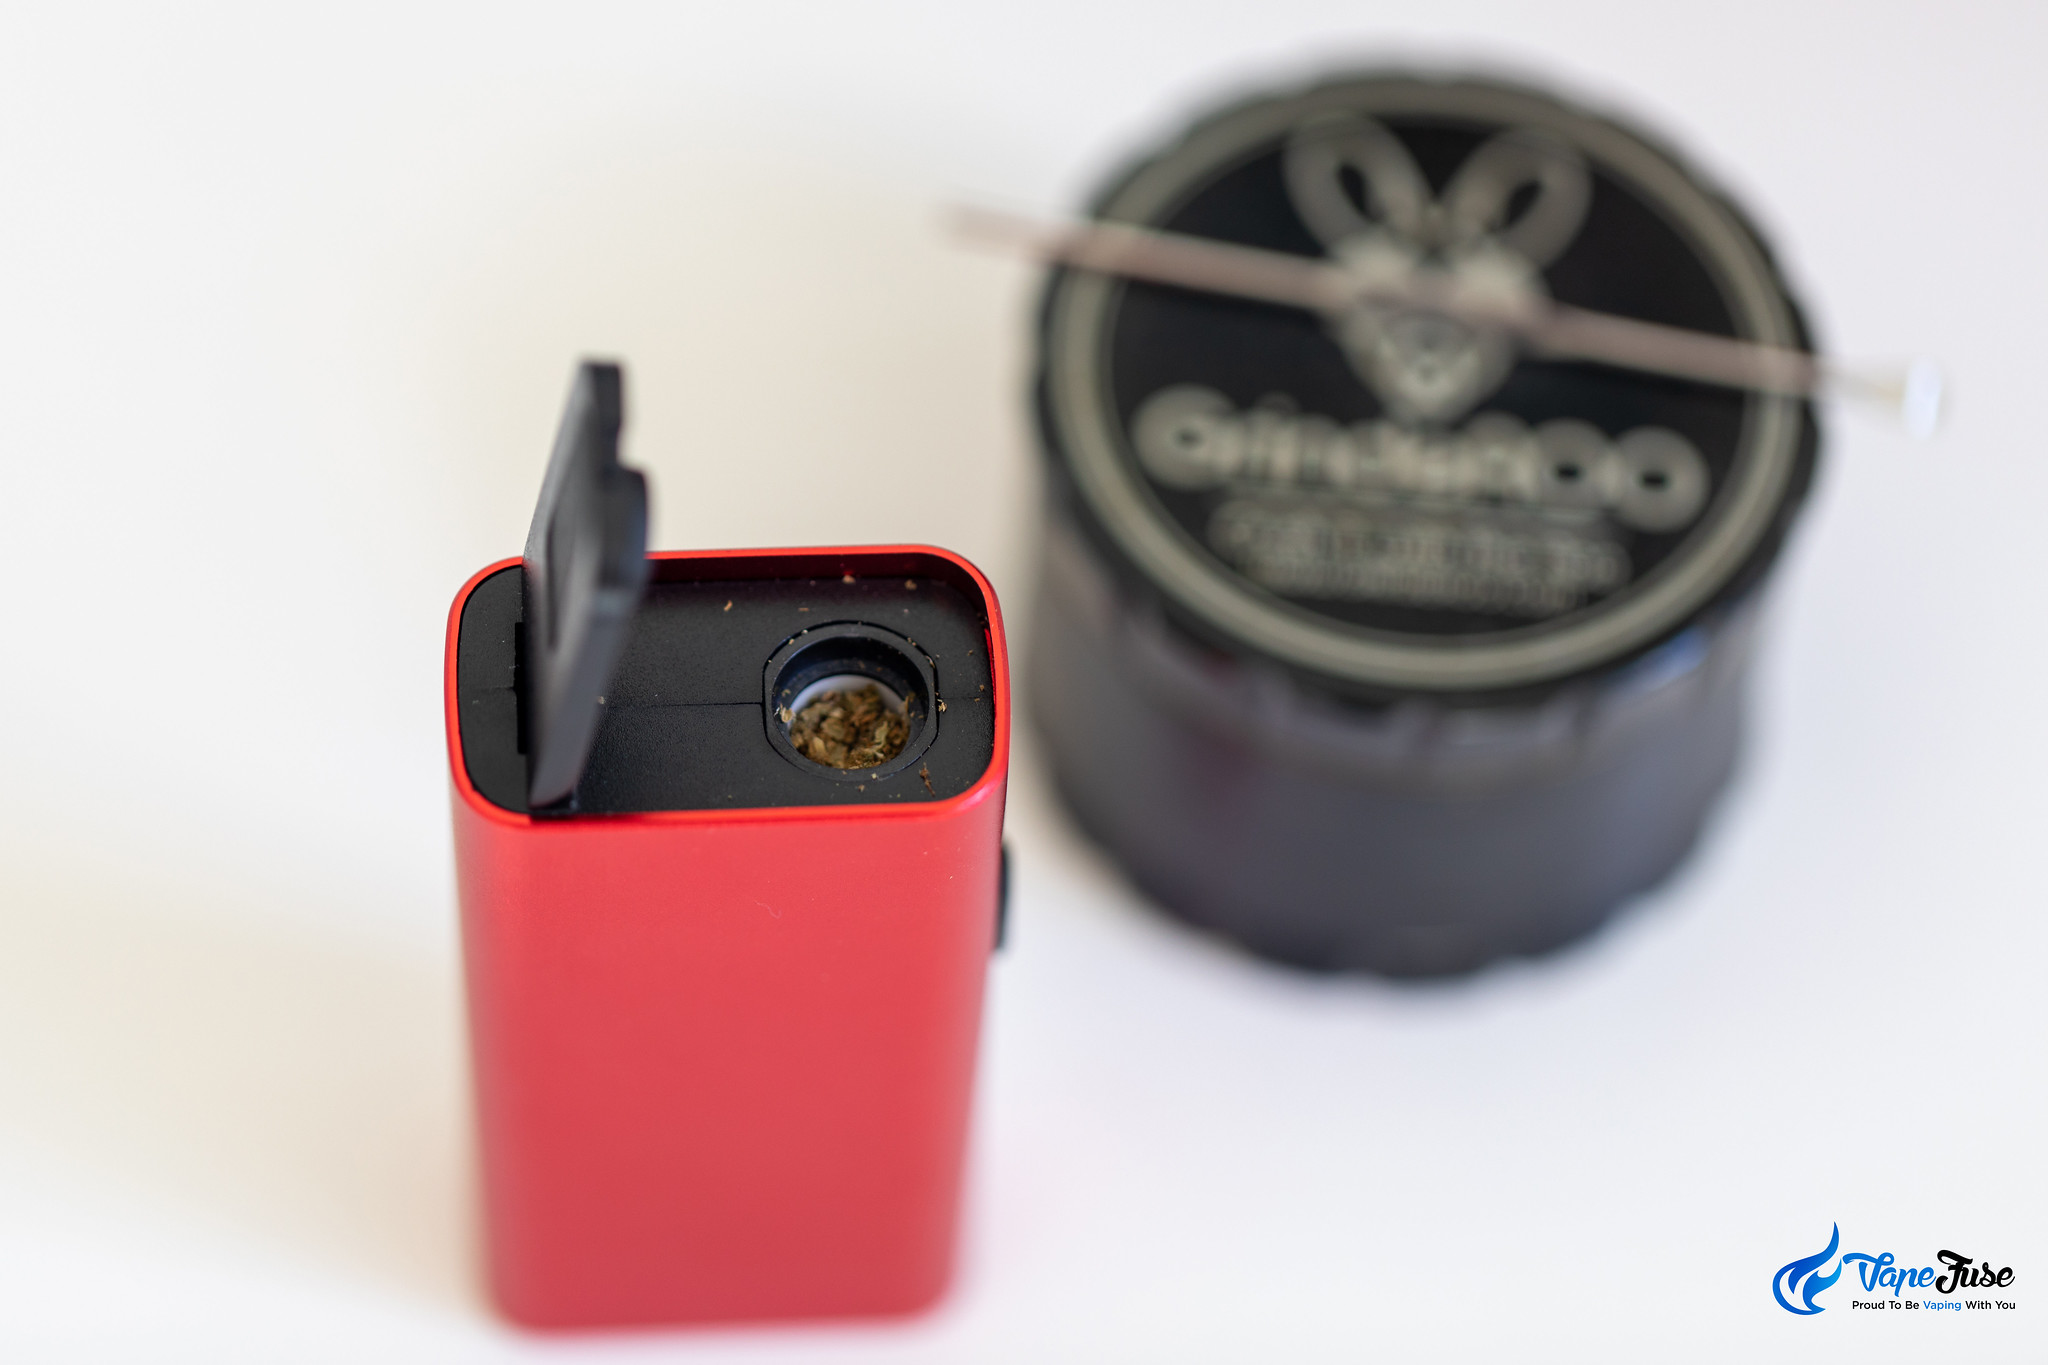 Vaporizer Chamber packed with ground herbs